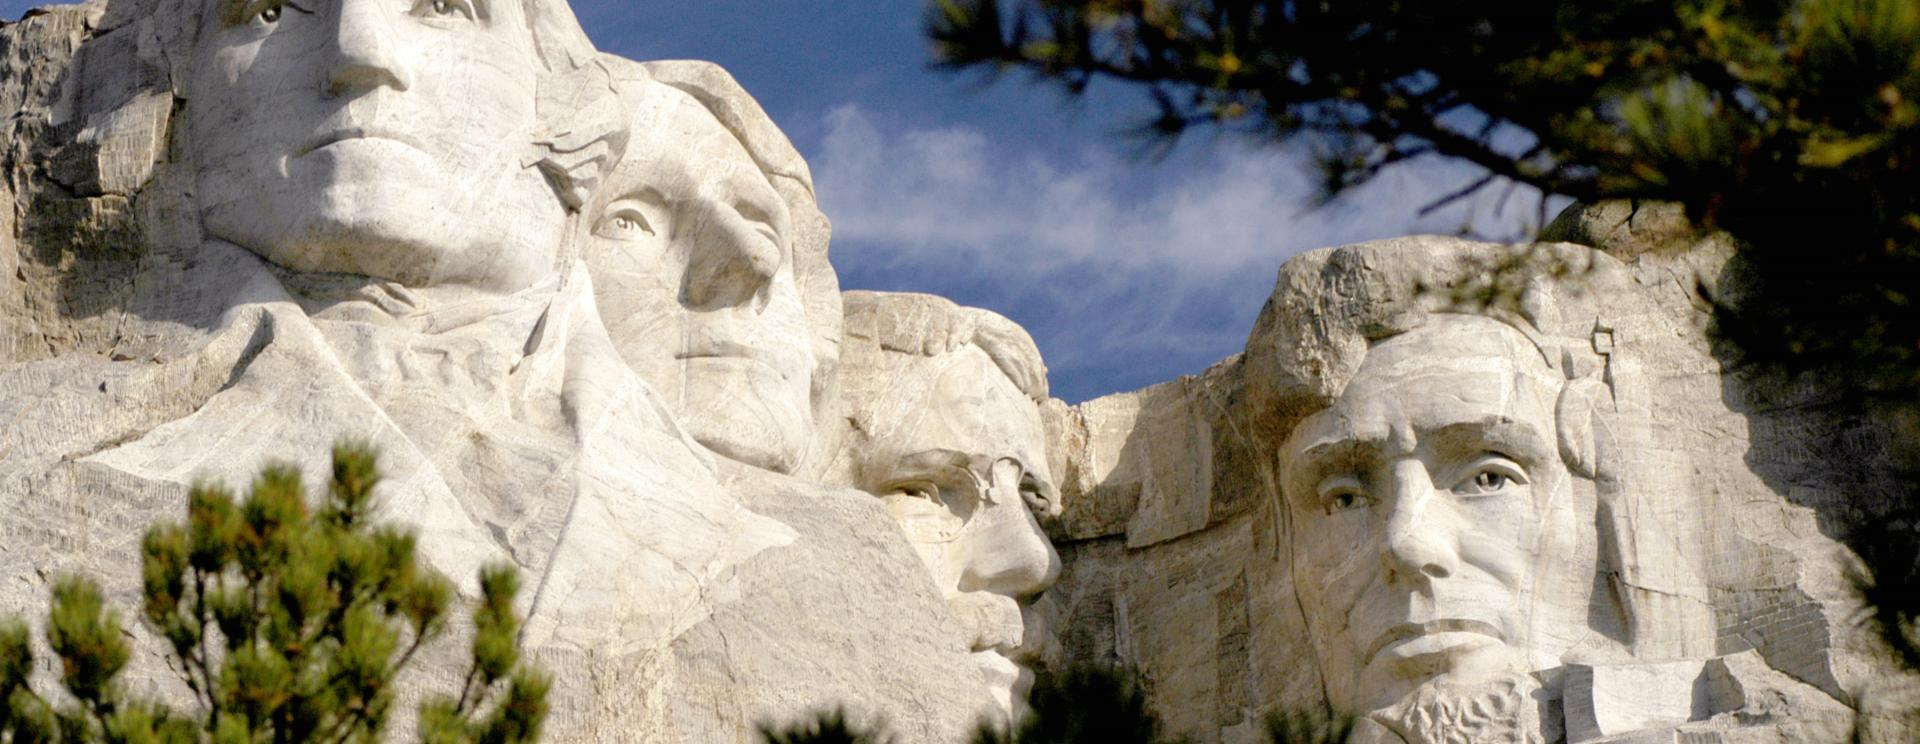 Ranger-led Programs at Mount Rushmore National Memorial